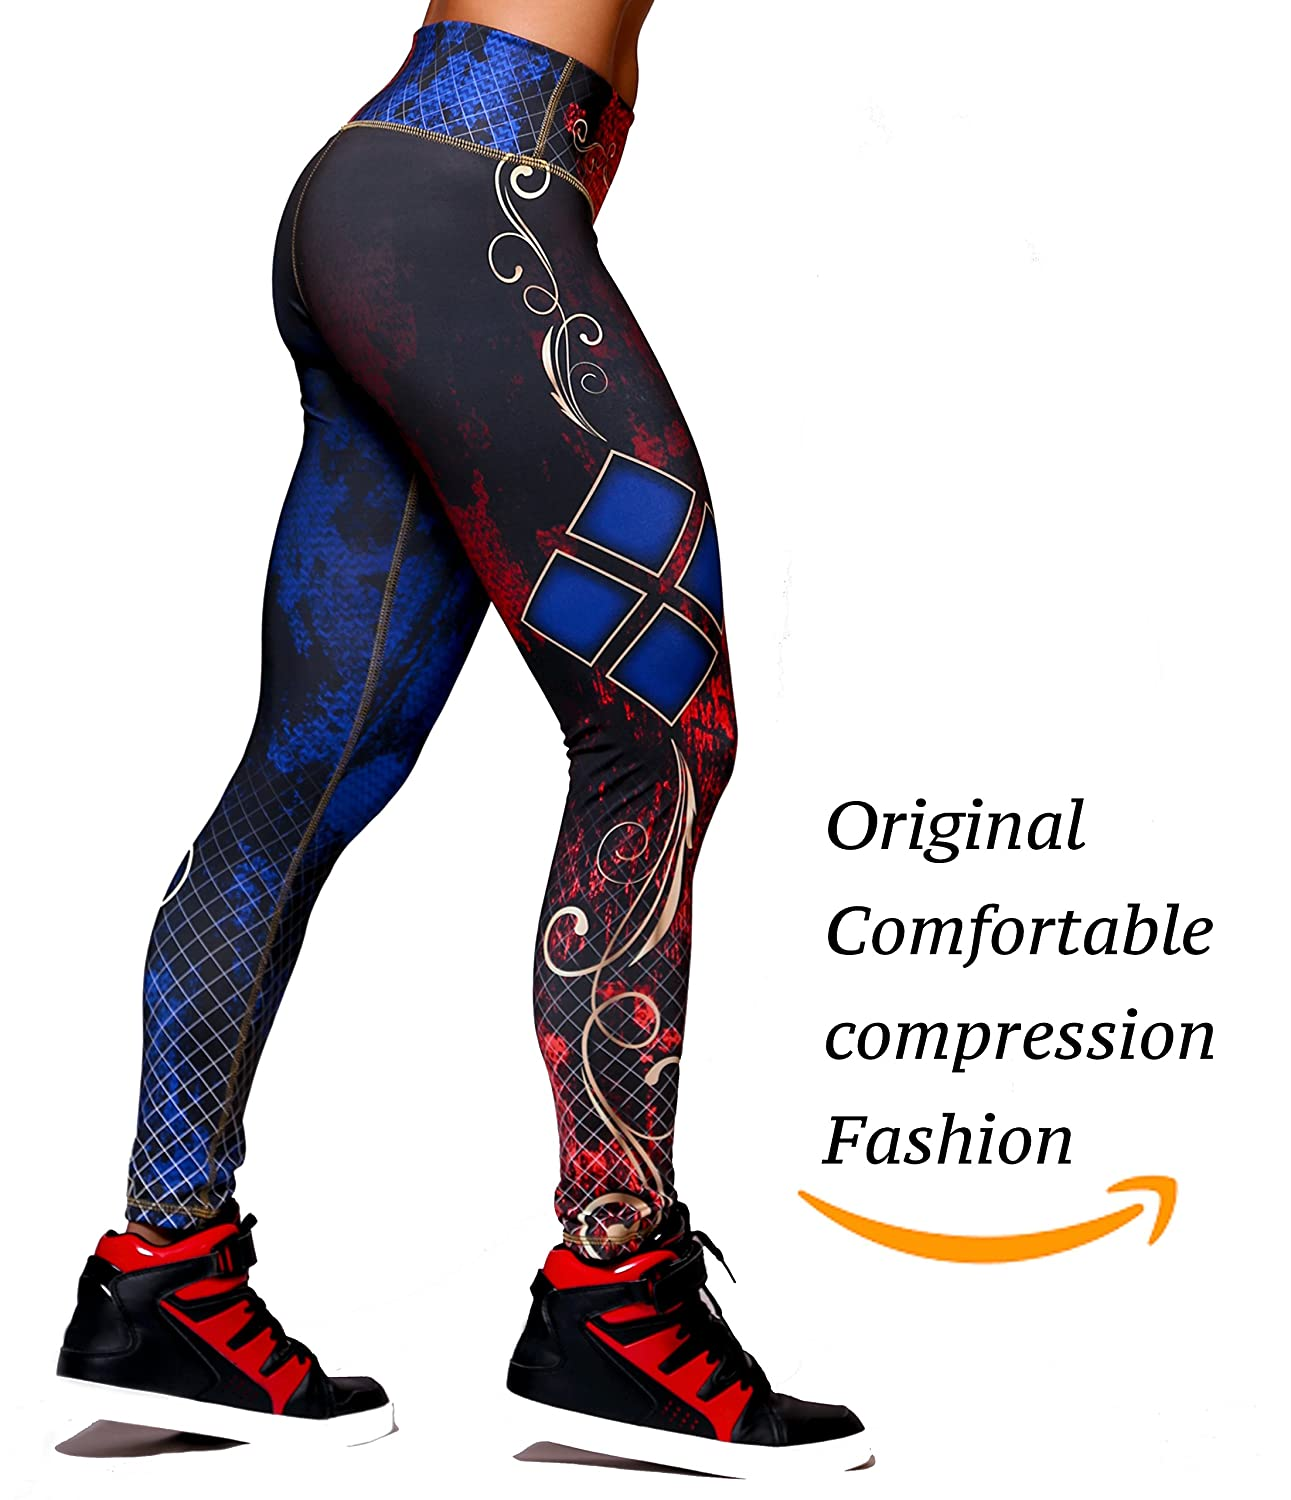 aedf88a26f These are recommended for women size XS/S/M/L. Microfiber, SUPPLEX© Spandex  Polyester. Fabric with benefits of advanced technology.